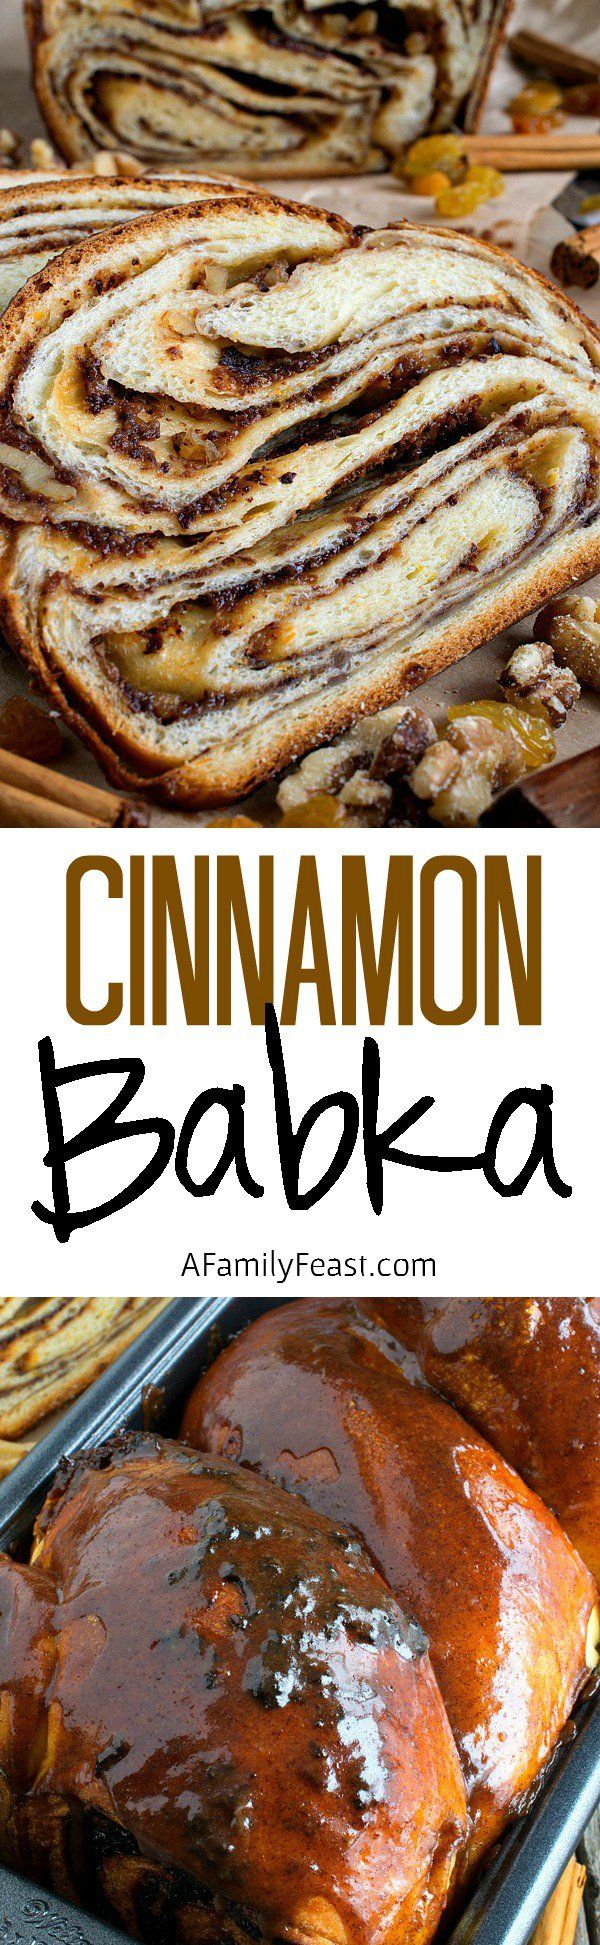 Cinnamon Raisin Swirl Babka - It's actually easy to make this incredible babka! Process photos included in recipe.